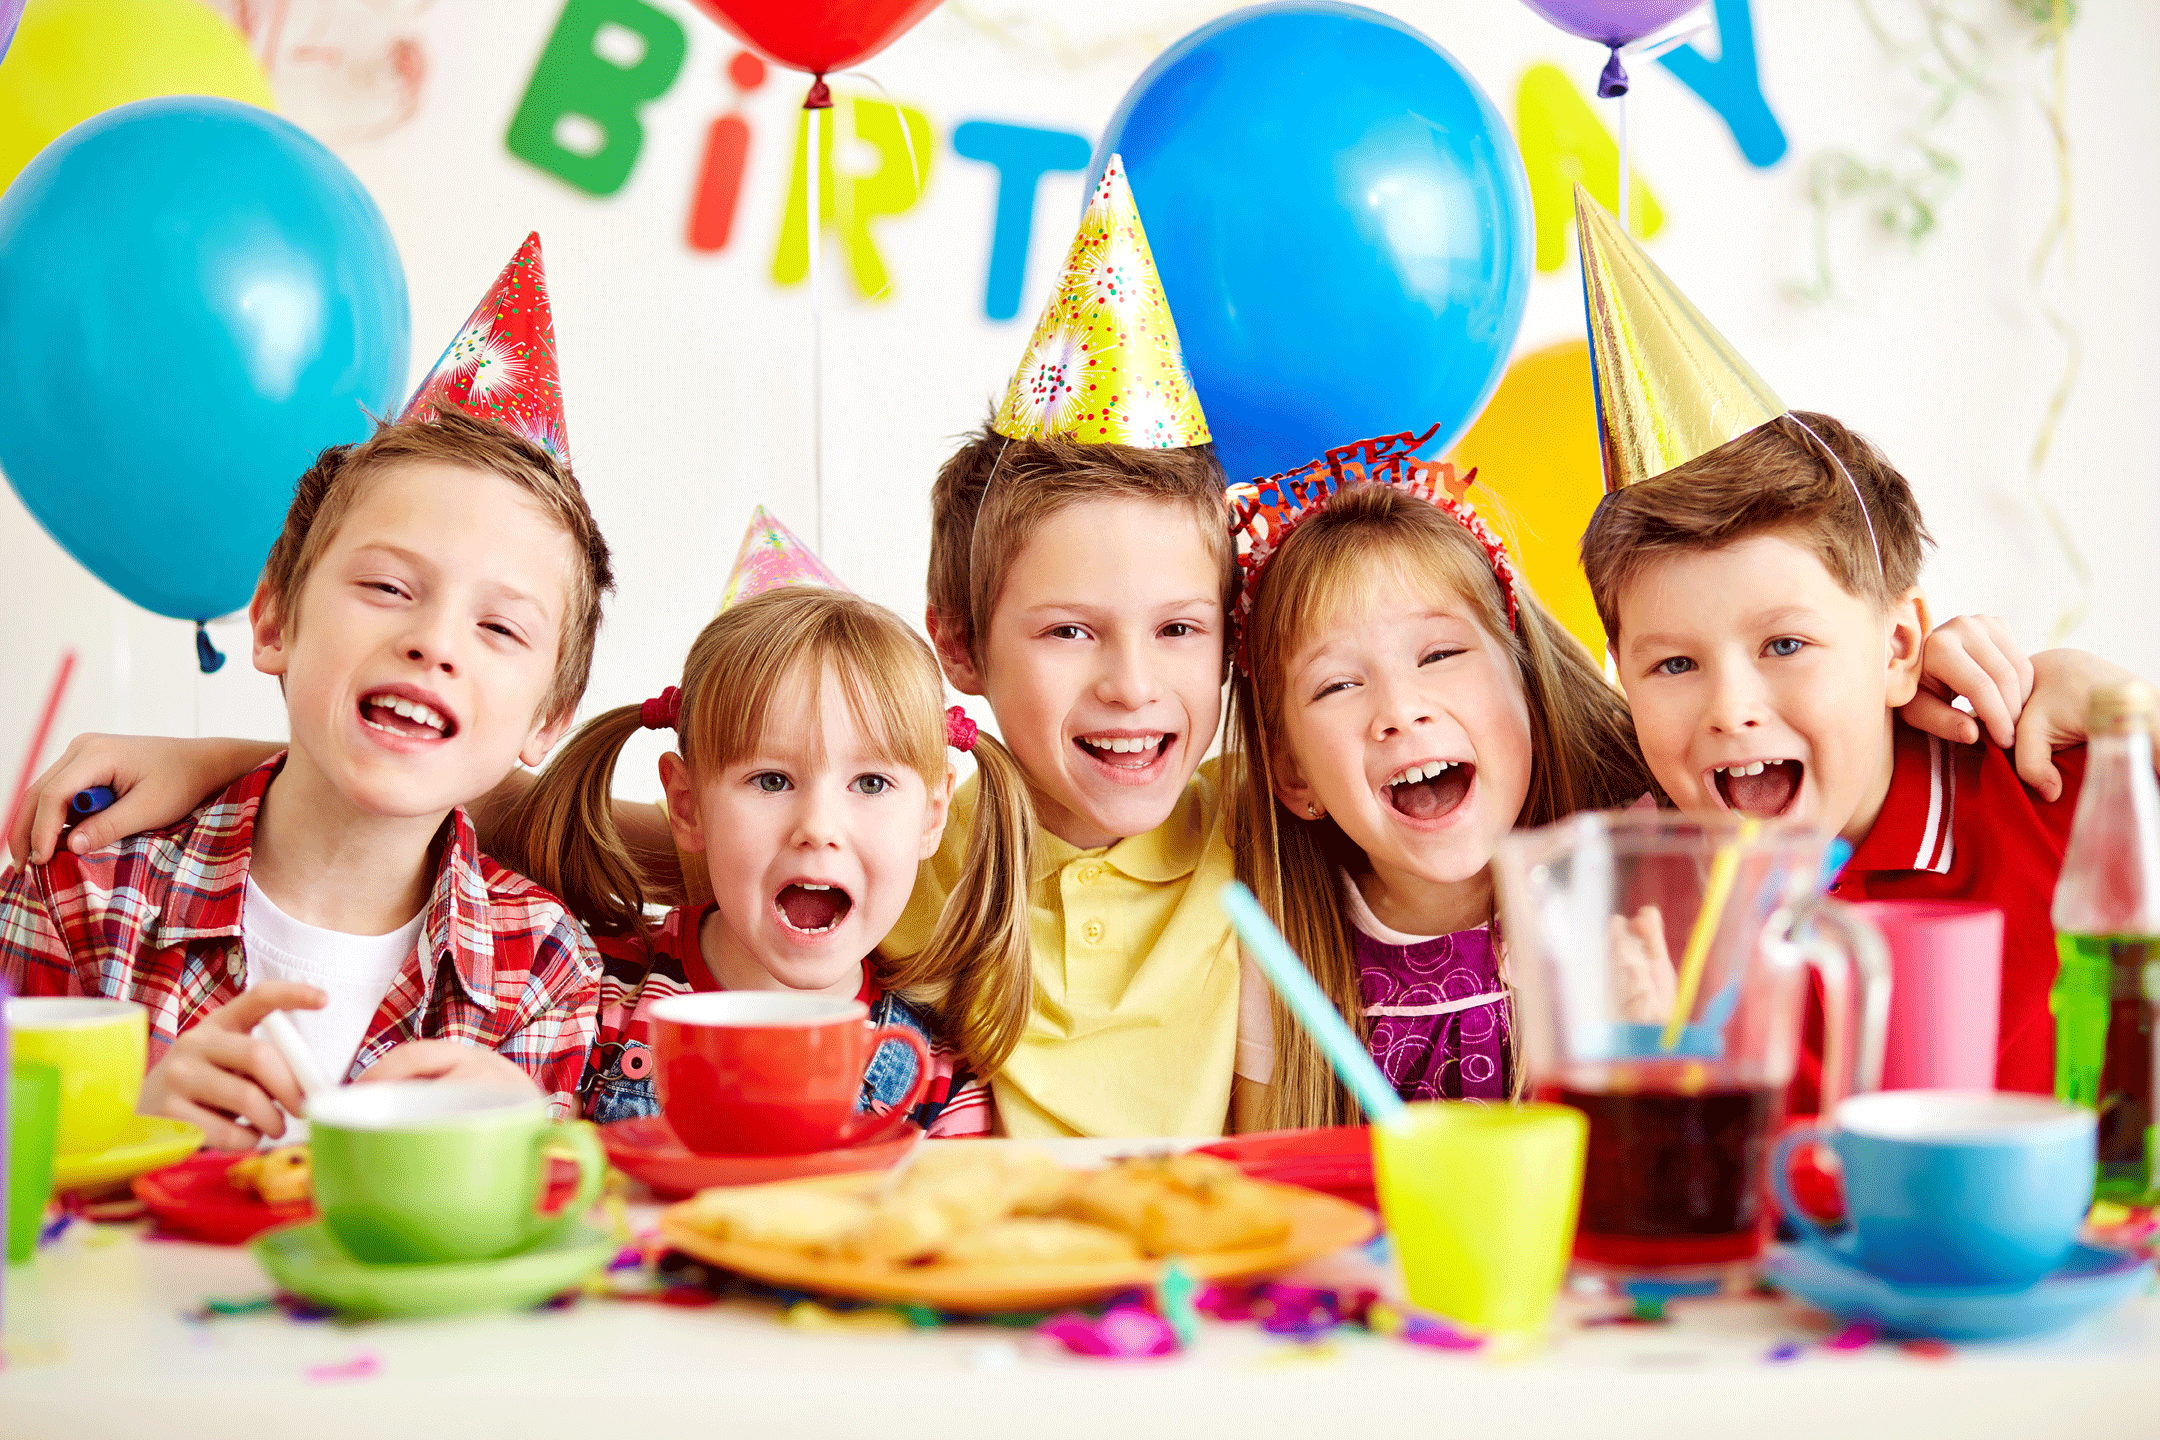 Planning Your Kid's Birthday Party